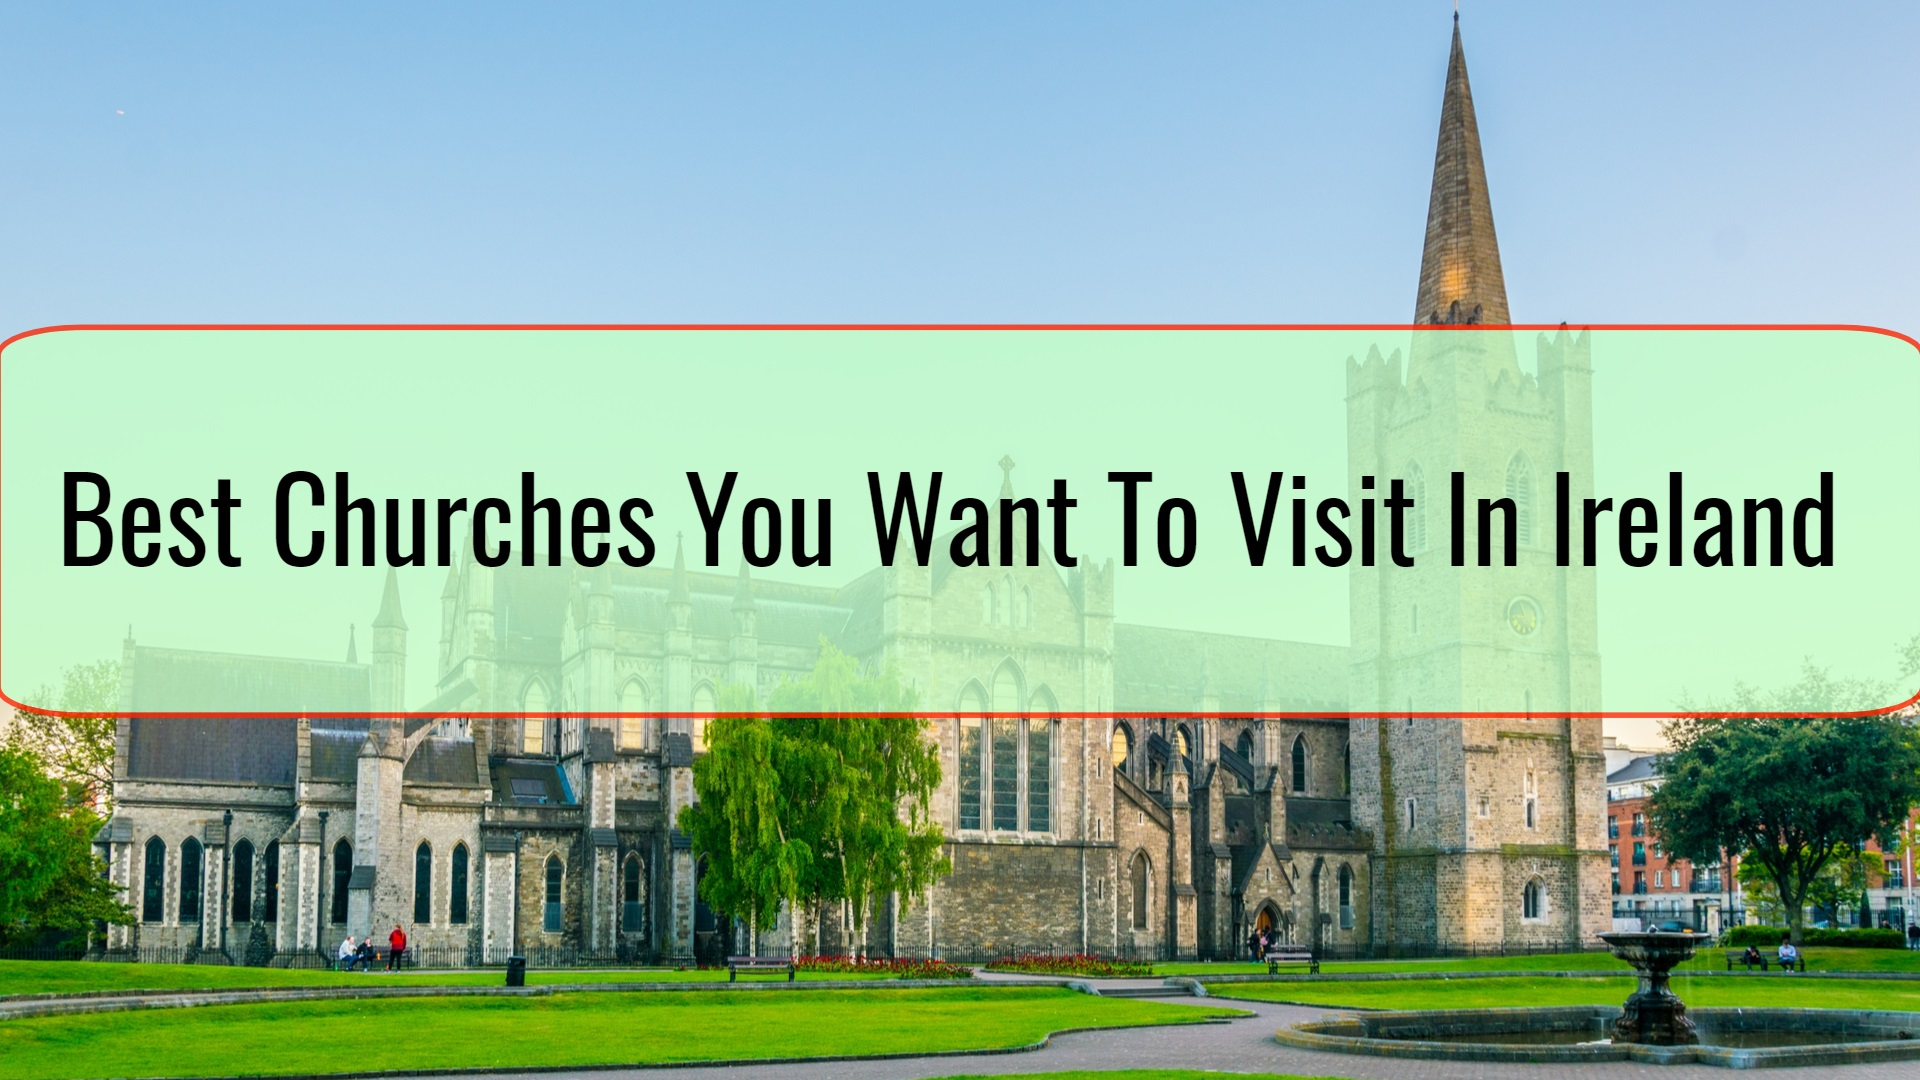 Best Churches You Want To Visit In Ireland